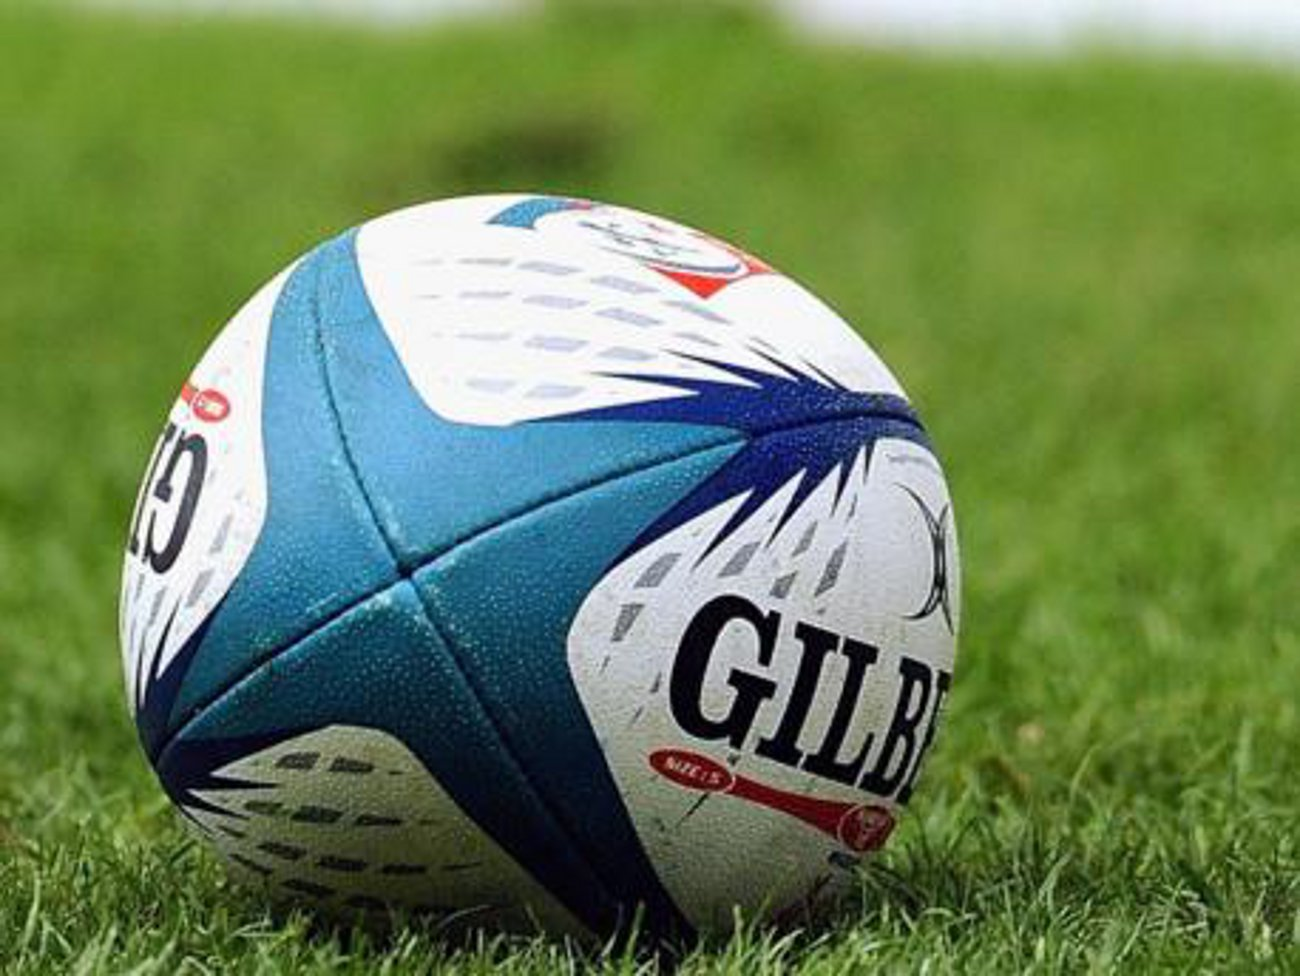 RUGBY: Chippenham 8 Amersham & Chiltern 12